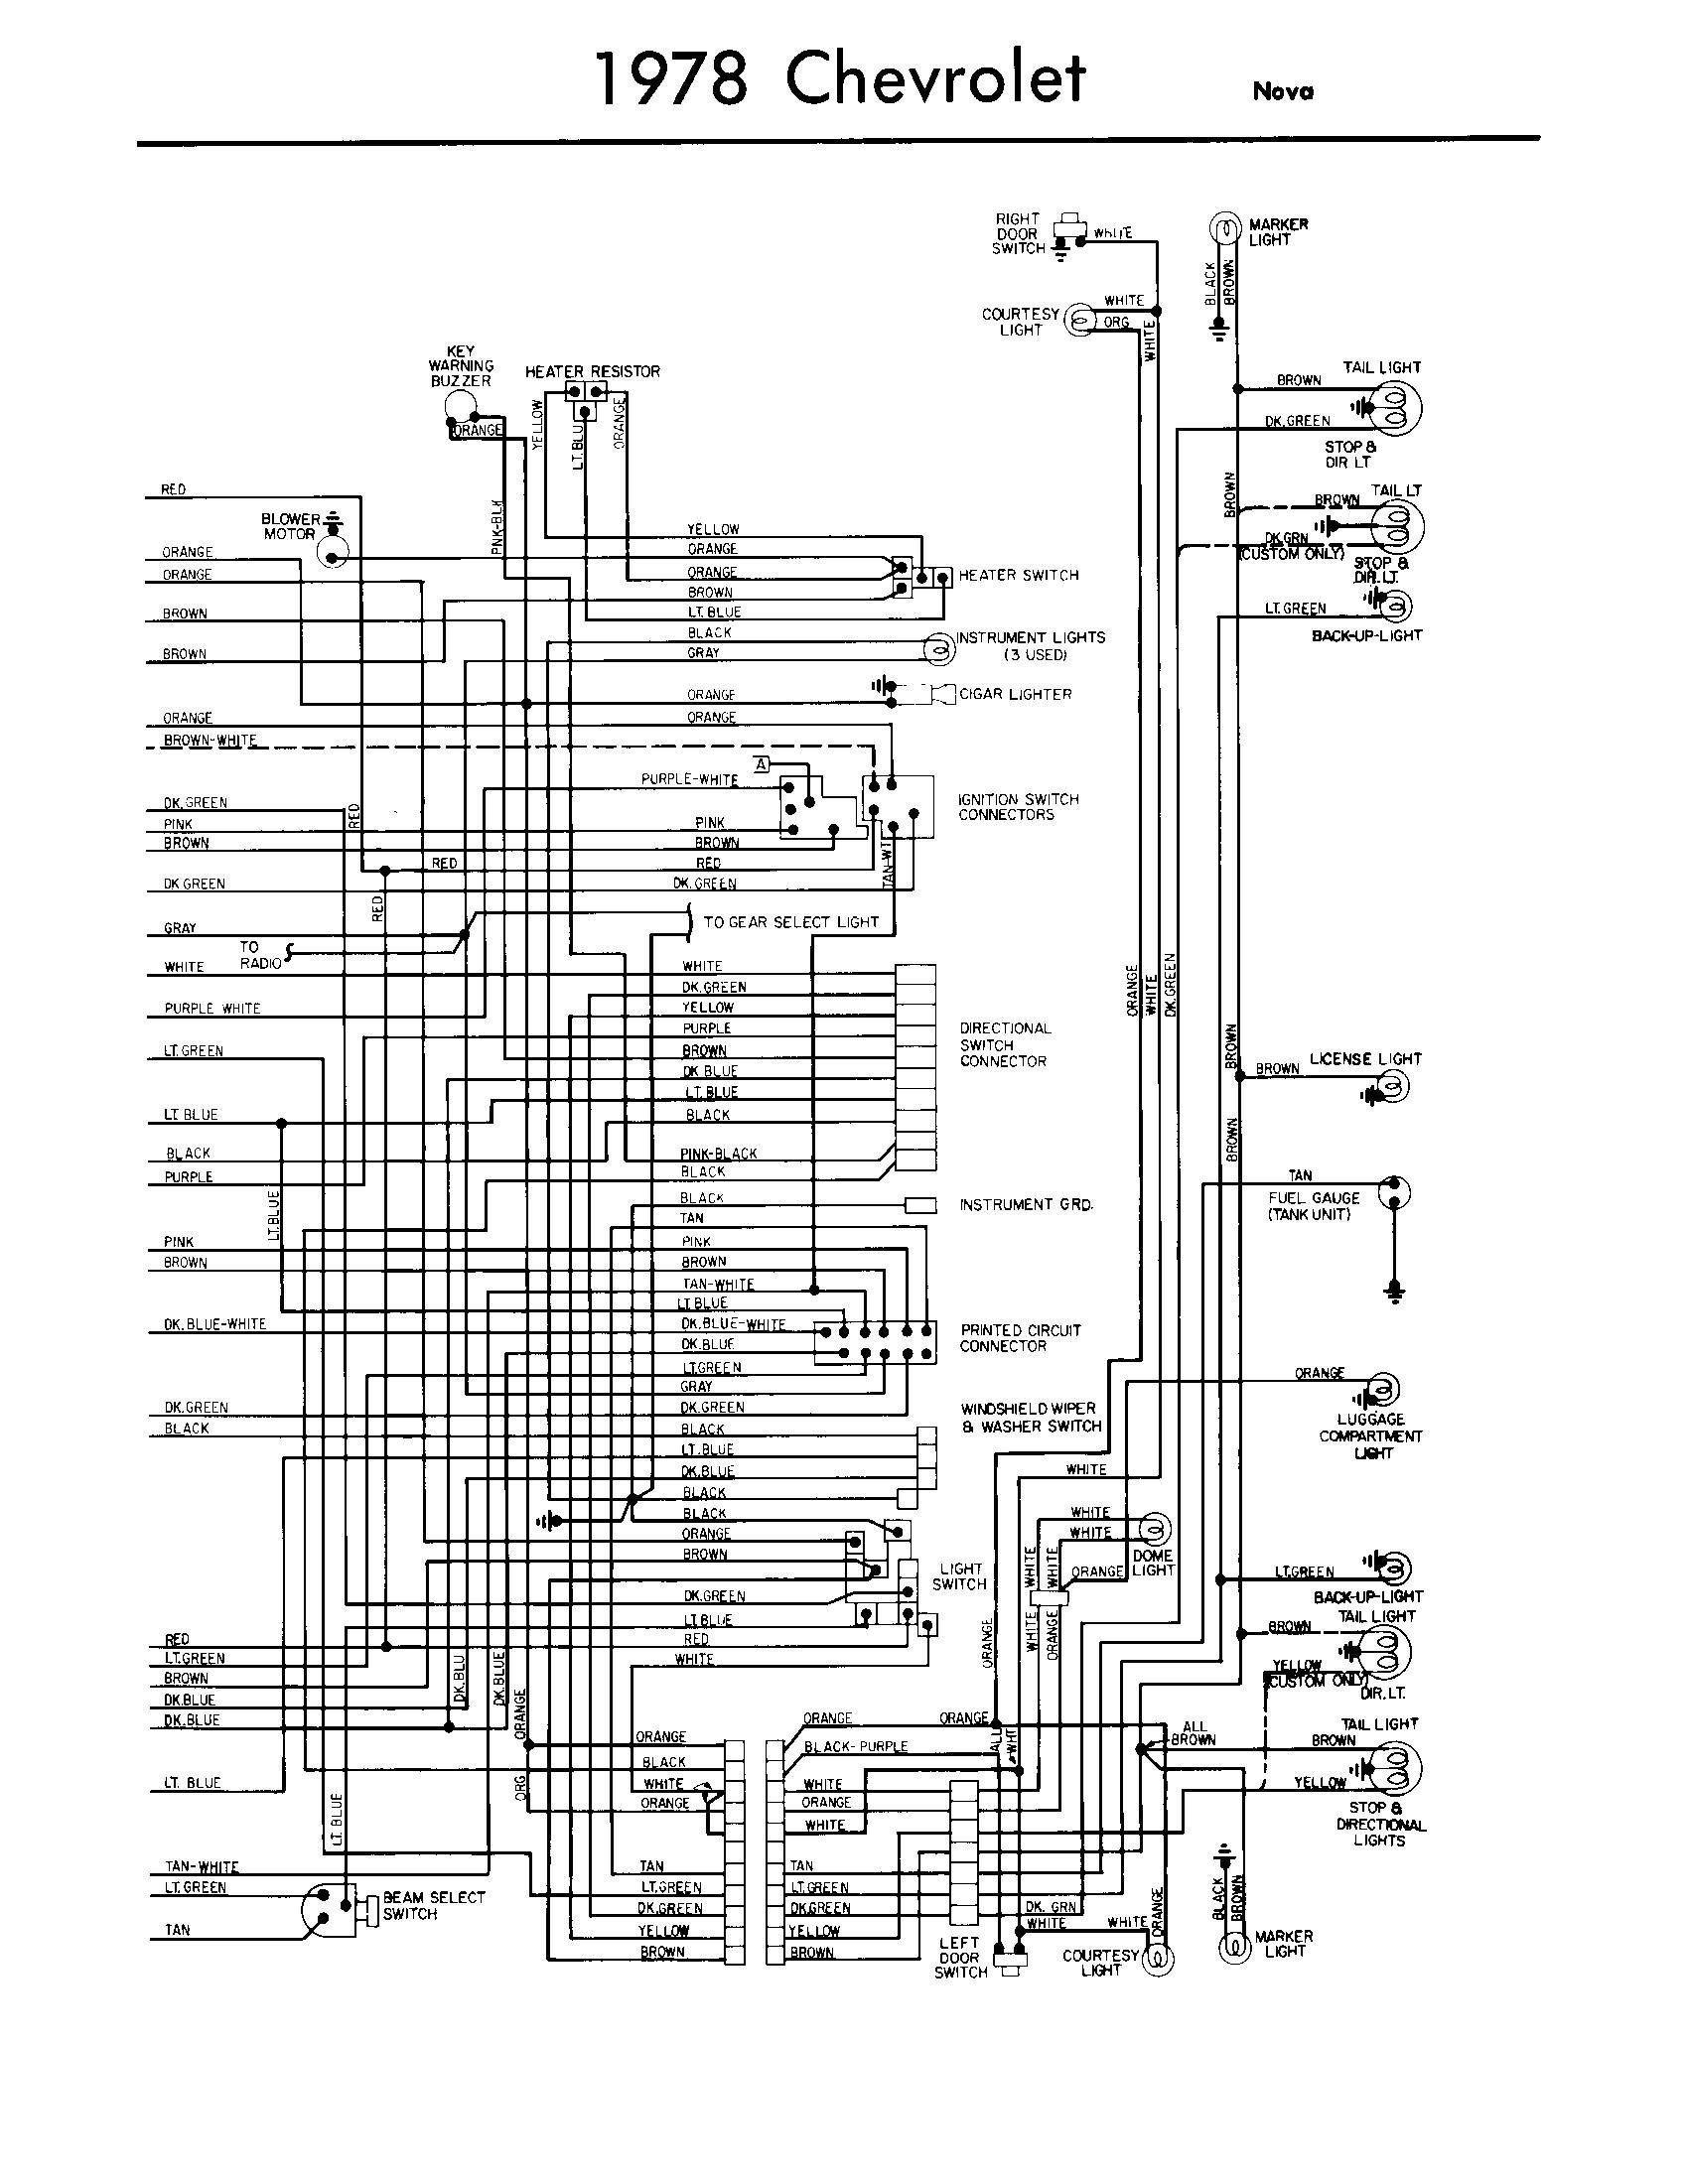 2004 corvette pcm wiring diagrams